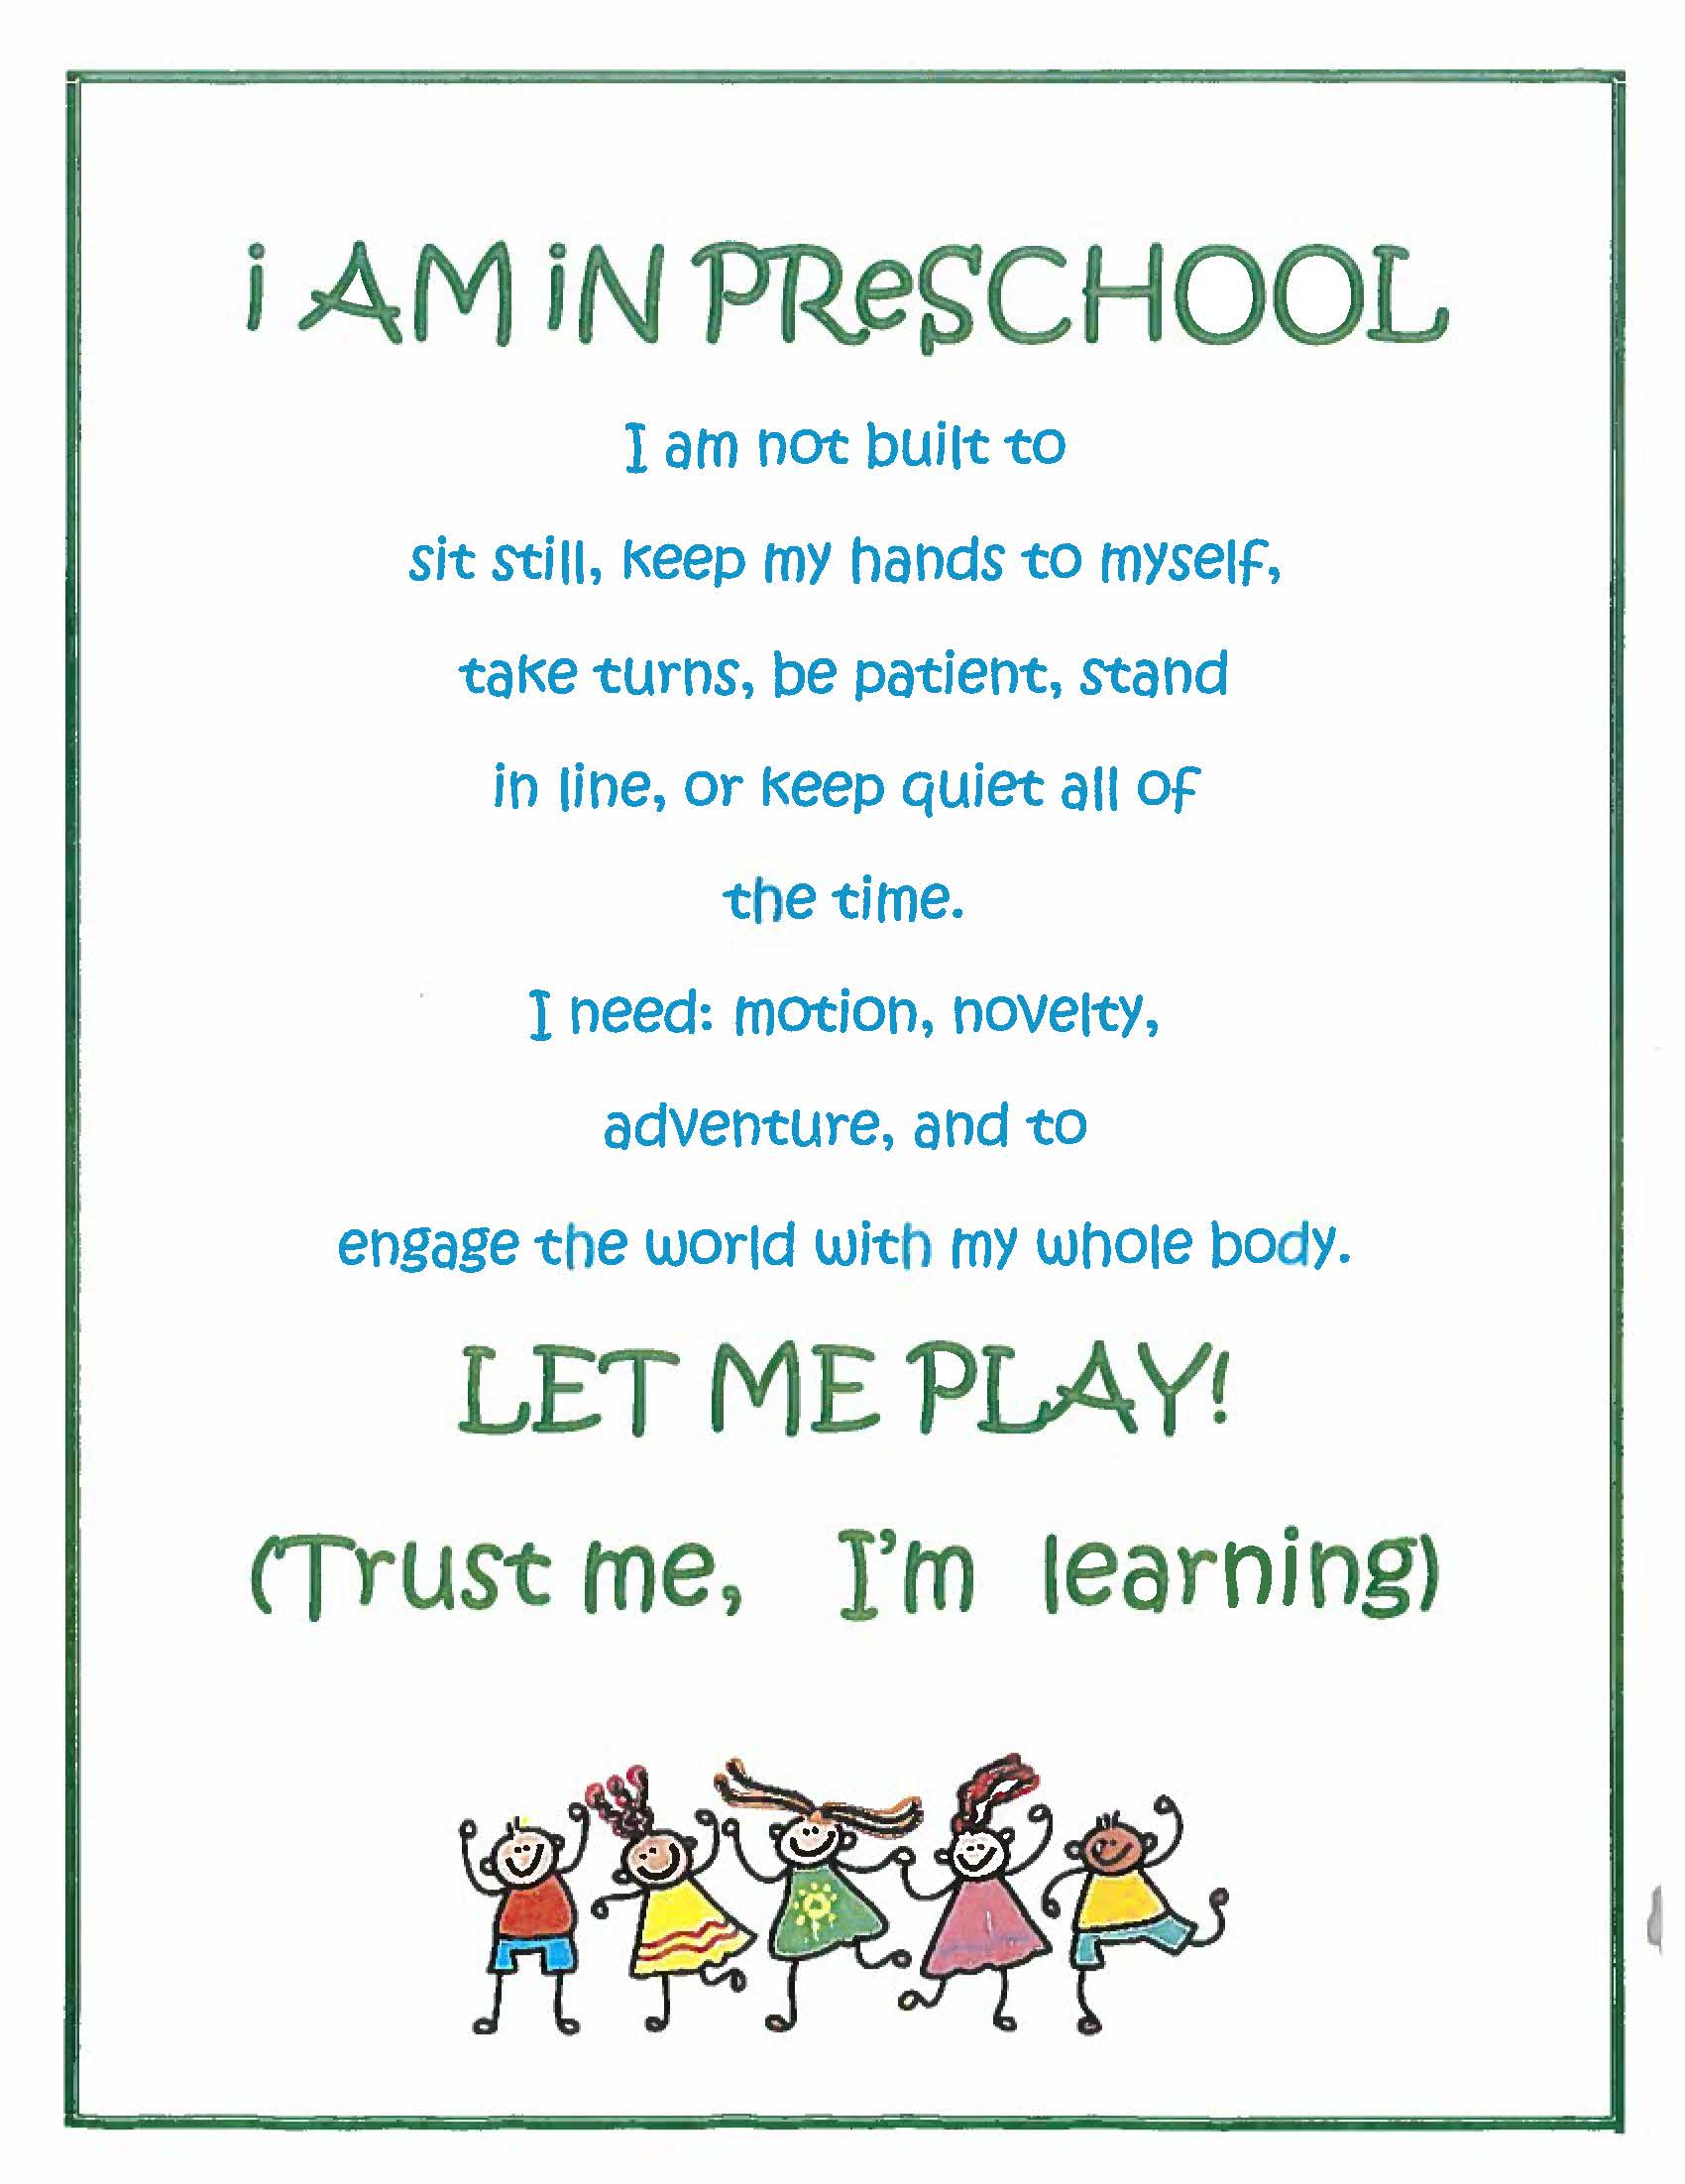 Preschool Teacher Quotes Preschool Teacher Quotes Entrancing Preschool Teacher Quotes